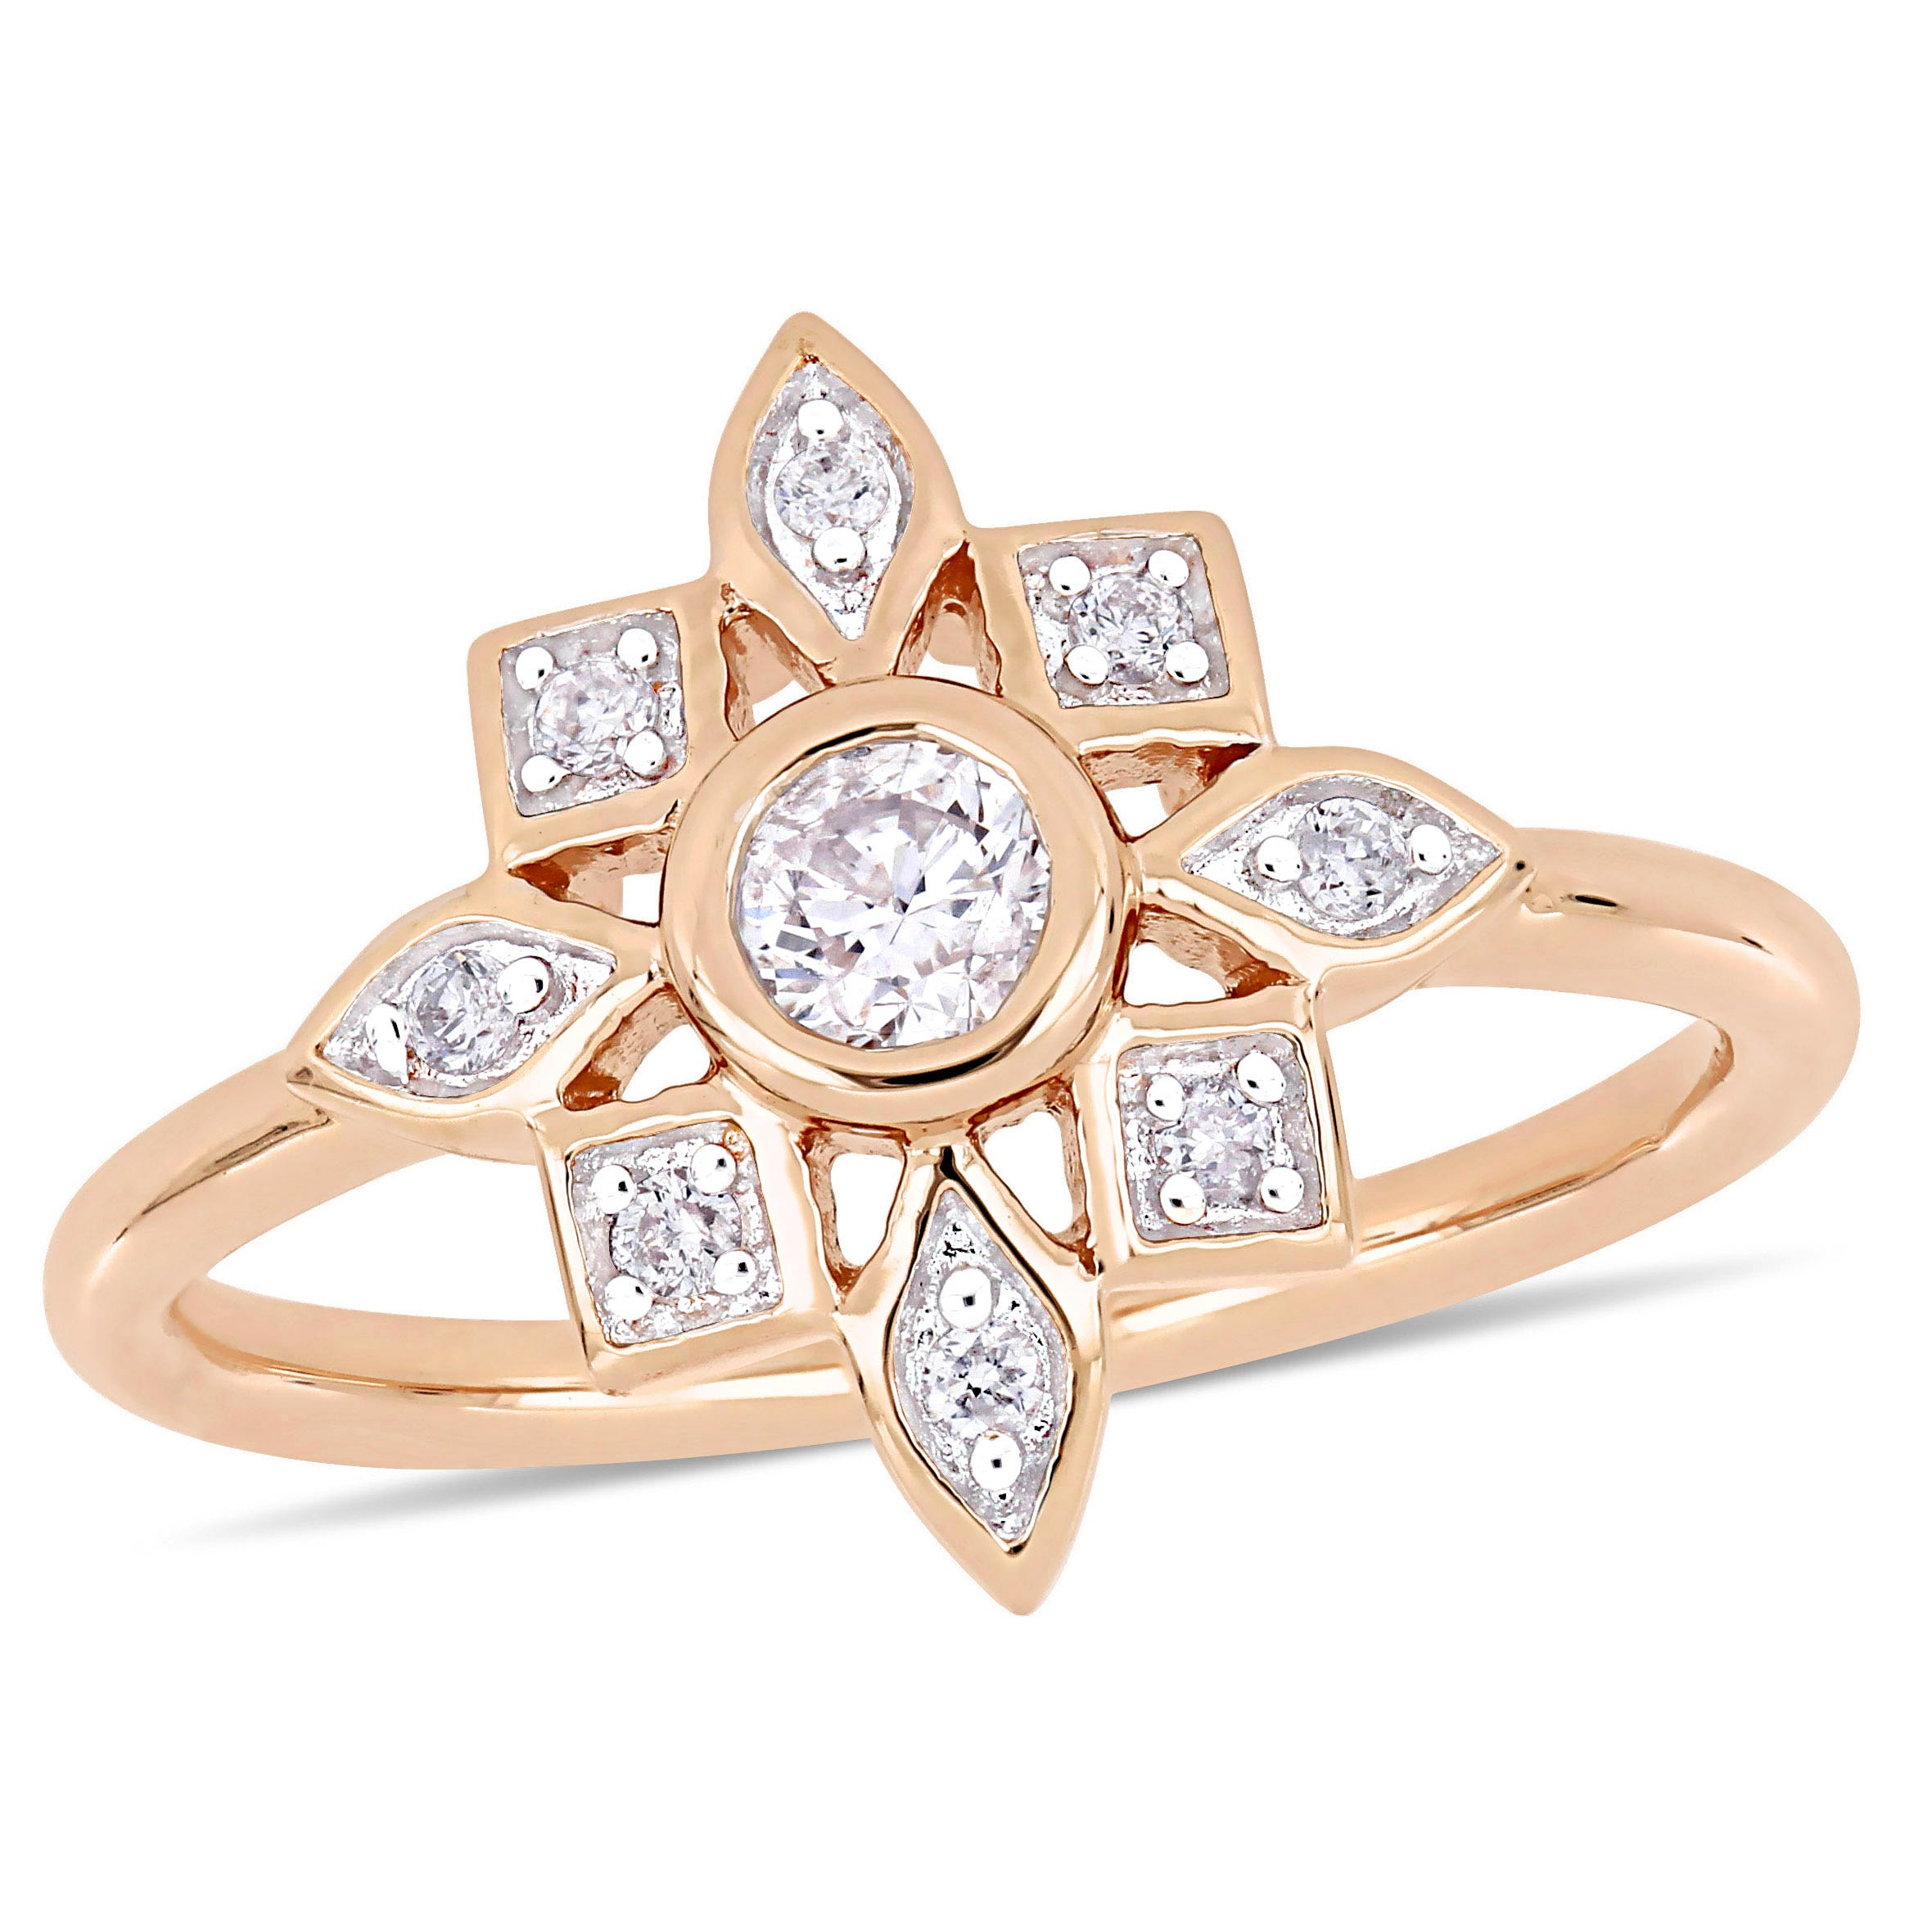 Everly Floral-Inspired 1/3ctw. Diamond Fashion Ring in 10k Rose Gold